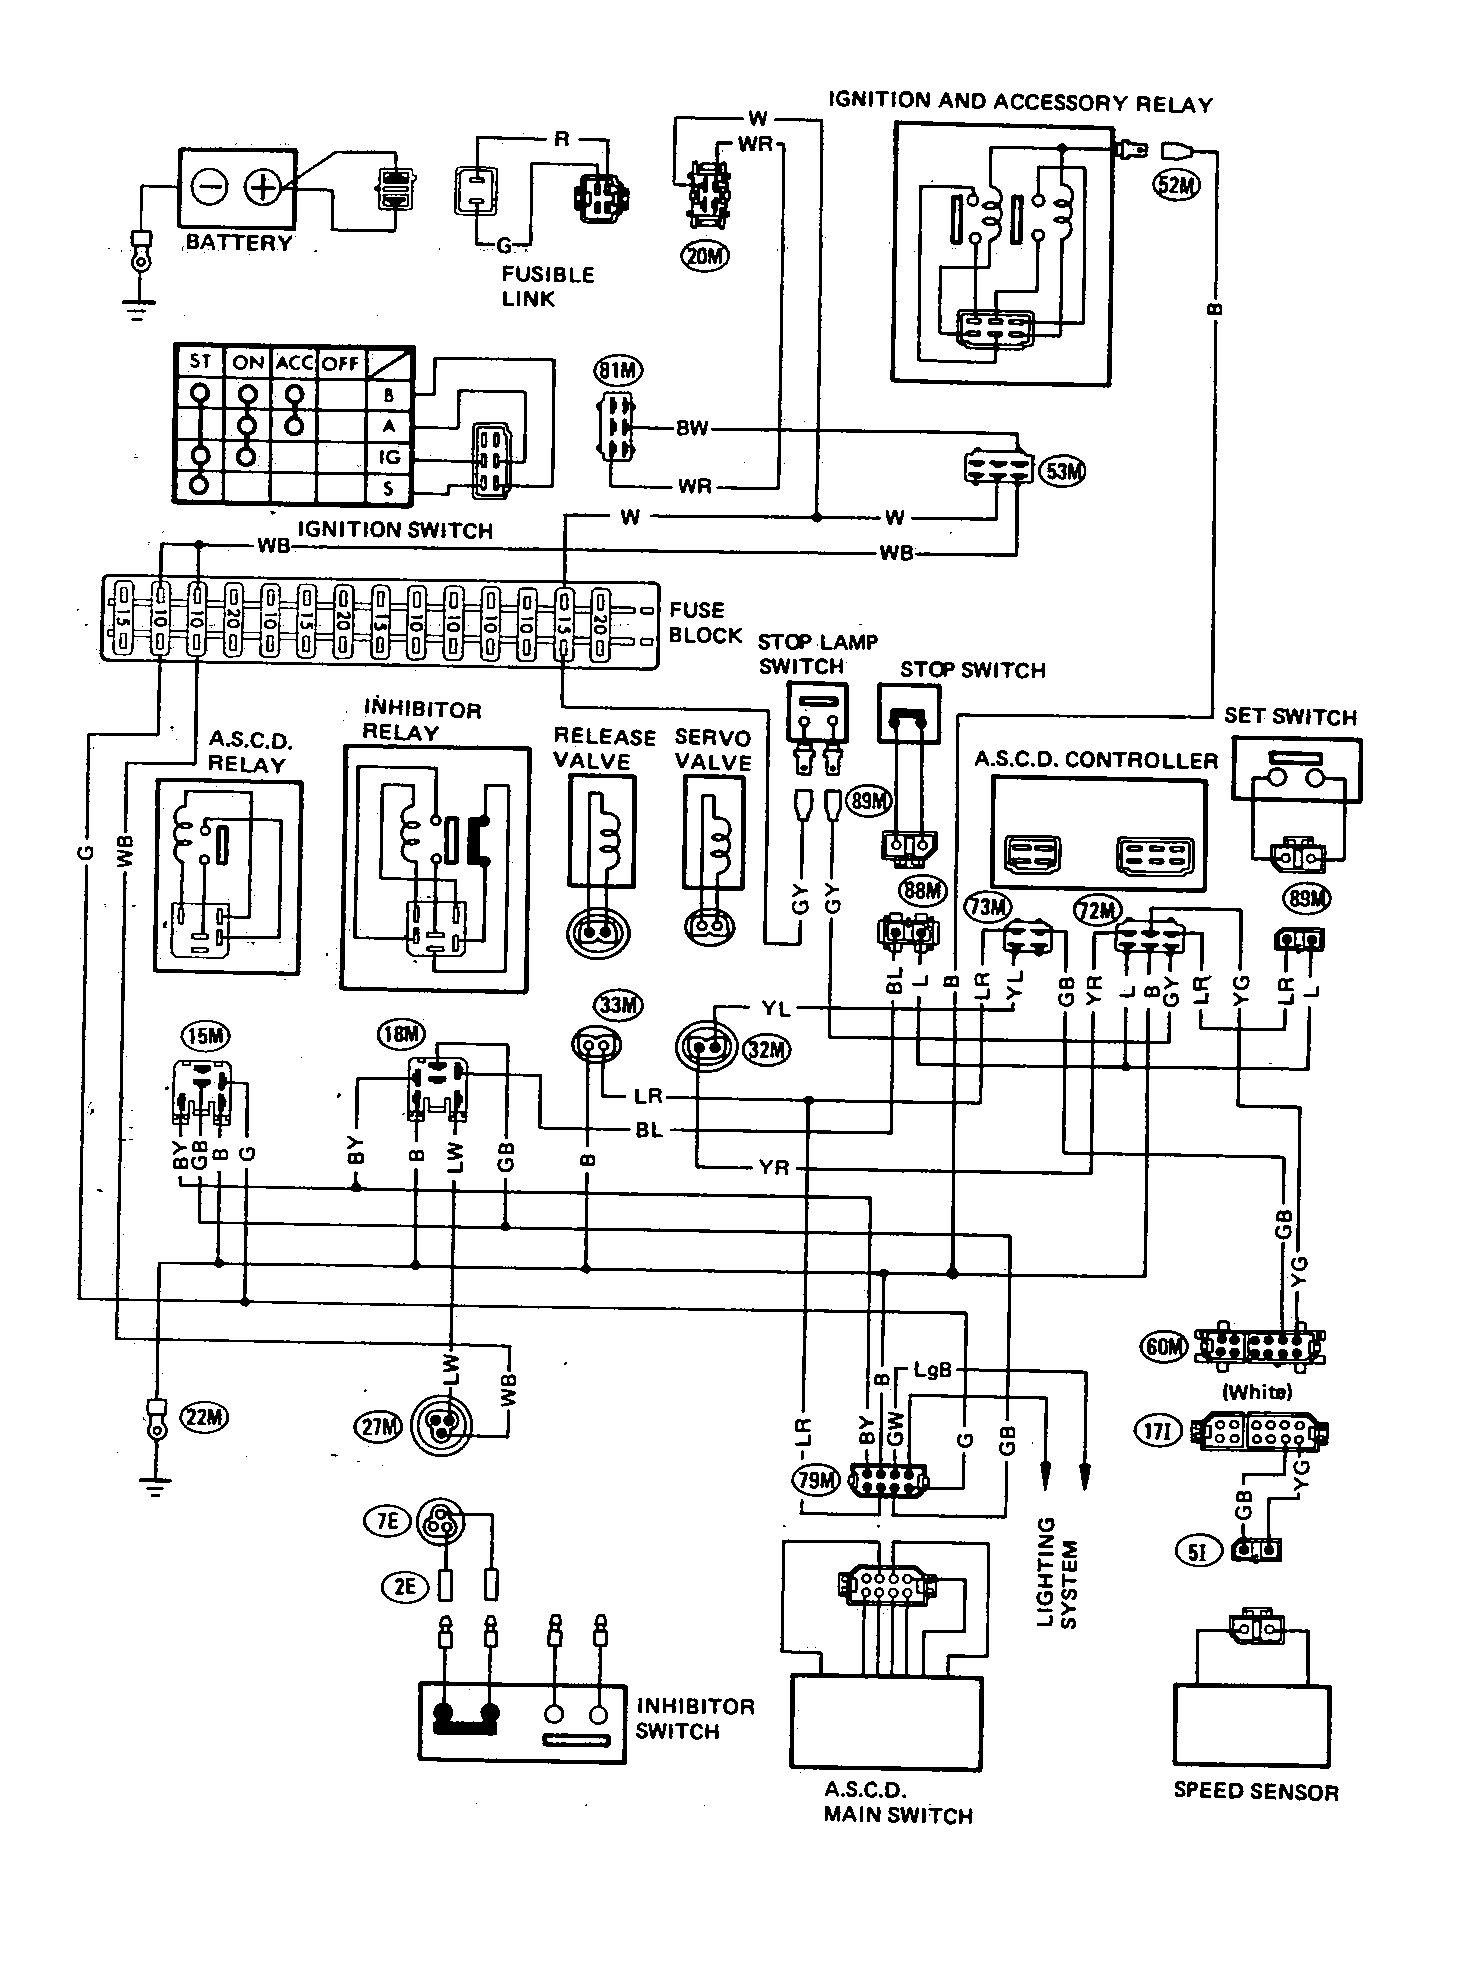 Lincoln Ls Engine Diagram 200sx Engine Wiring Harness Get Free Image About Wiring Diagram Of Lincoln Ls Engine Diagram